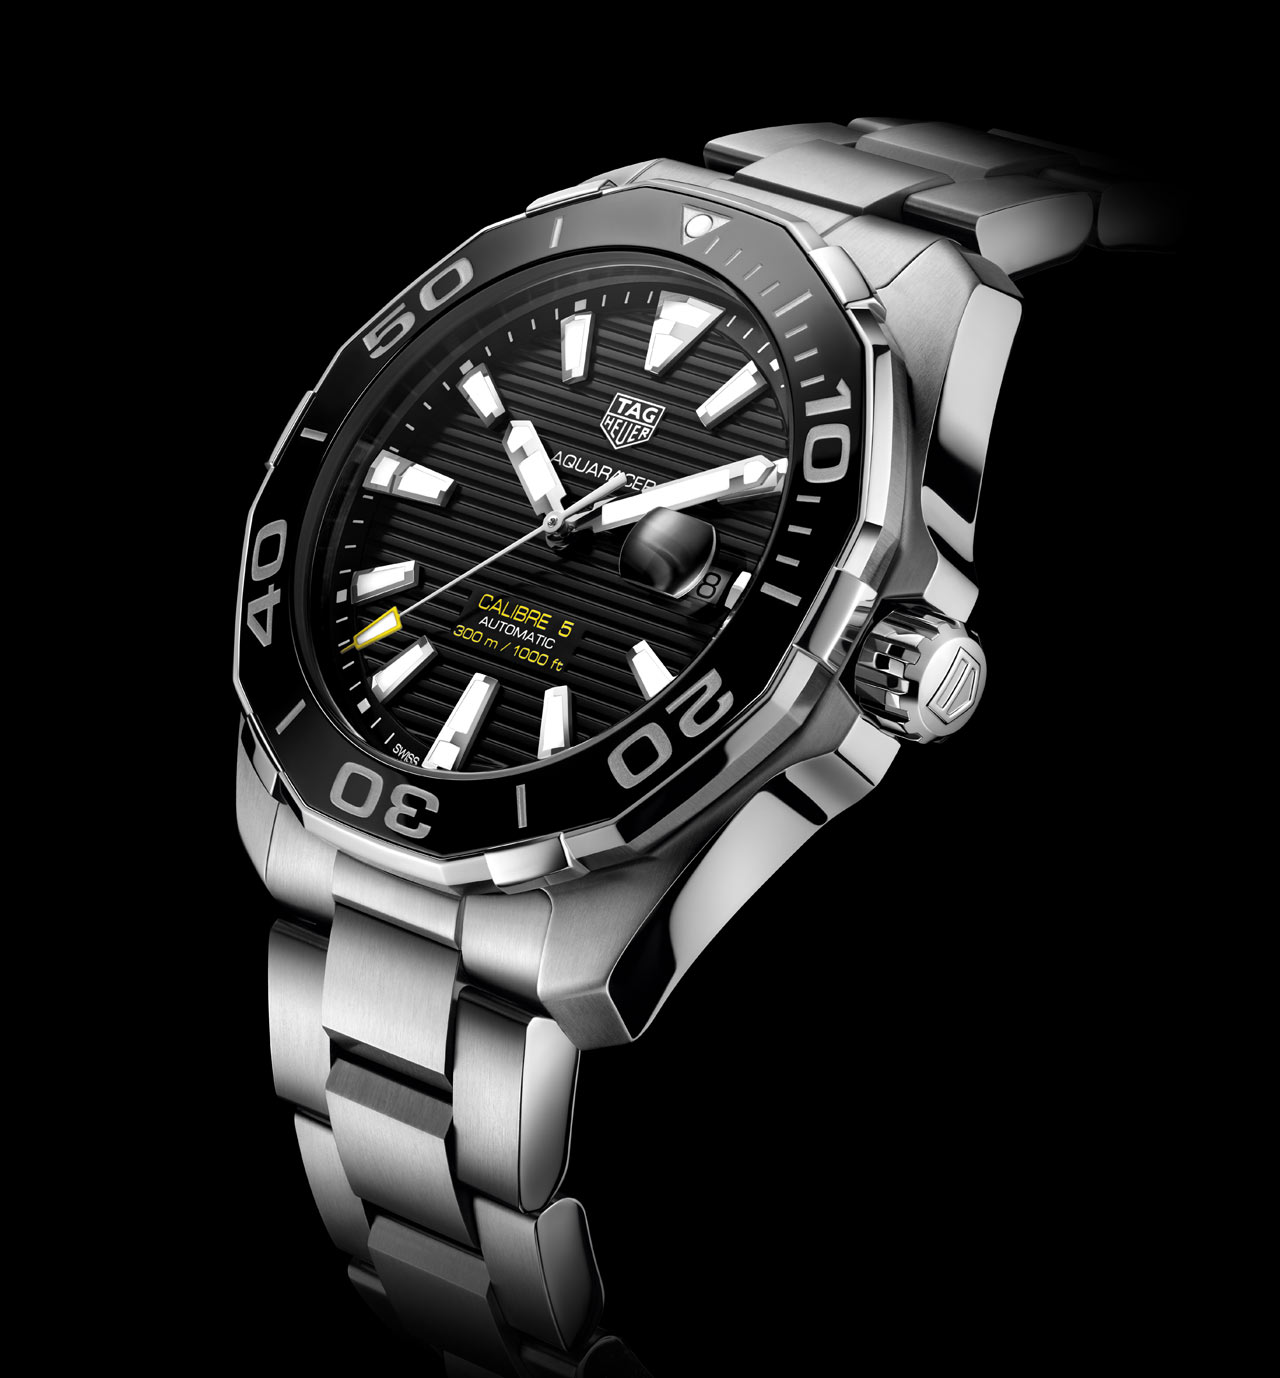 Tag heuer aquaracer 300m calibre 5 ceramic 43 mm time and watches for Tag heuer aquaracer